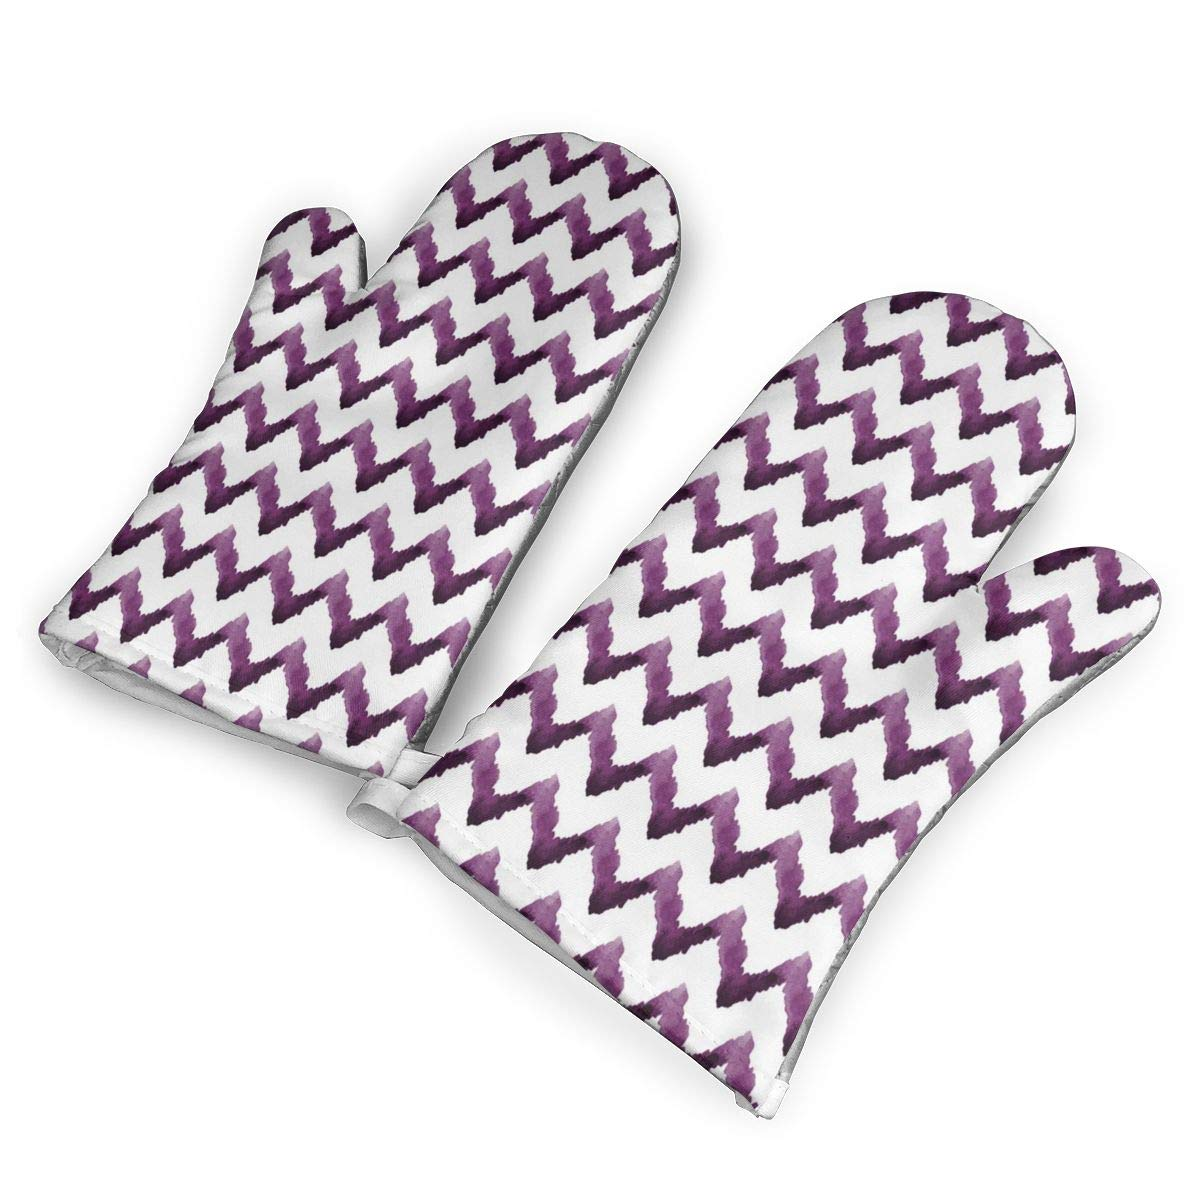 Oven Mitts 5.5 X 12 In Watercolor Chevron Stripe Purple Non-Slip Kitchen Oven Gloves Heat Resistant Washable Cotton Lining by KIXYOUHUU